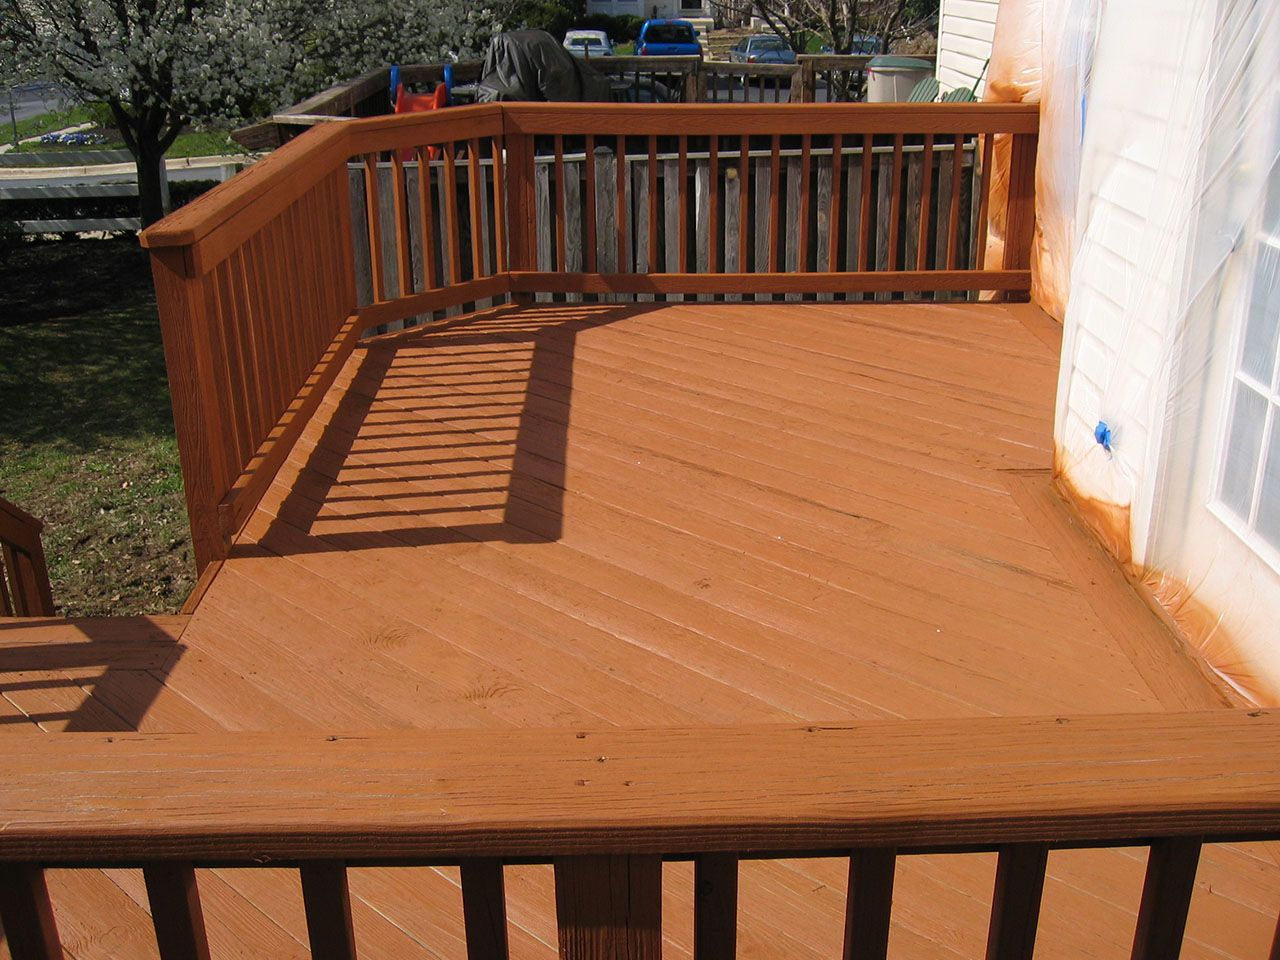 Exciting Behr Deckover Colors With Wood Deck Railing And Cozy Wood Flooring Deck Stains